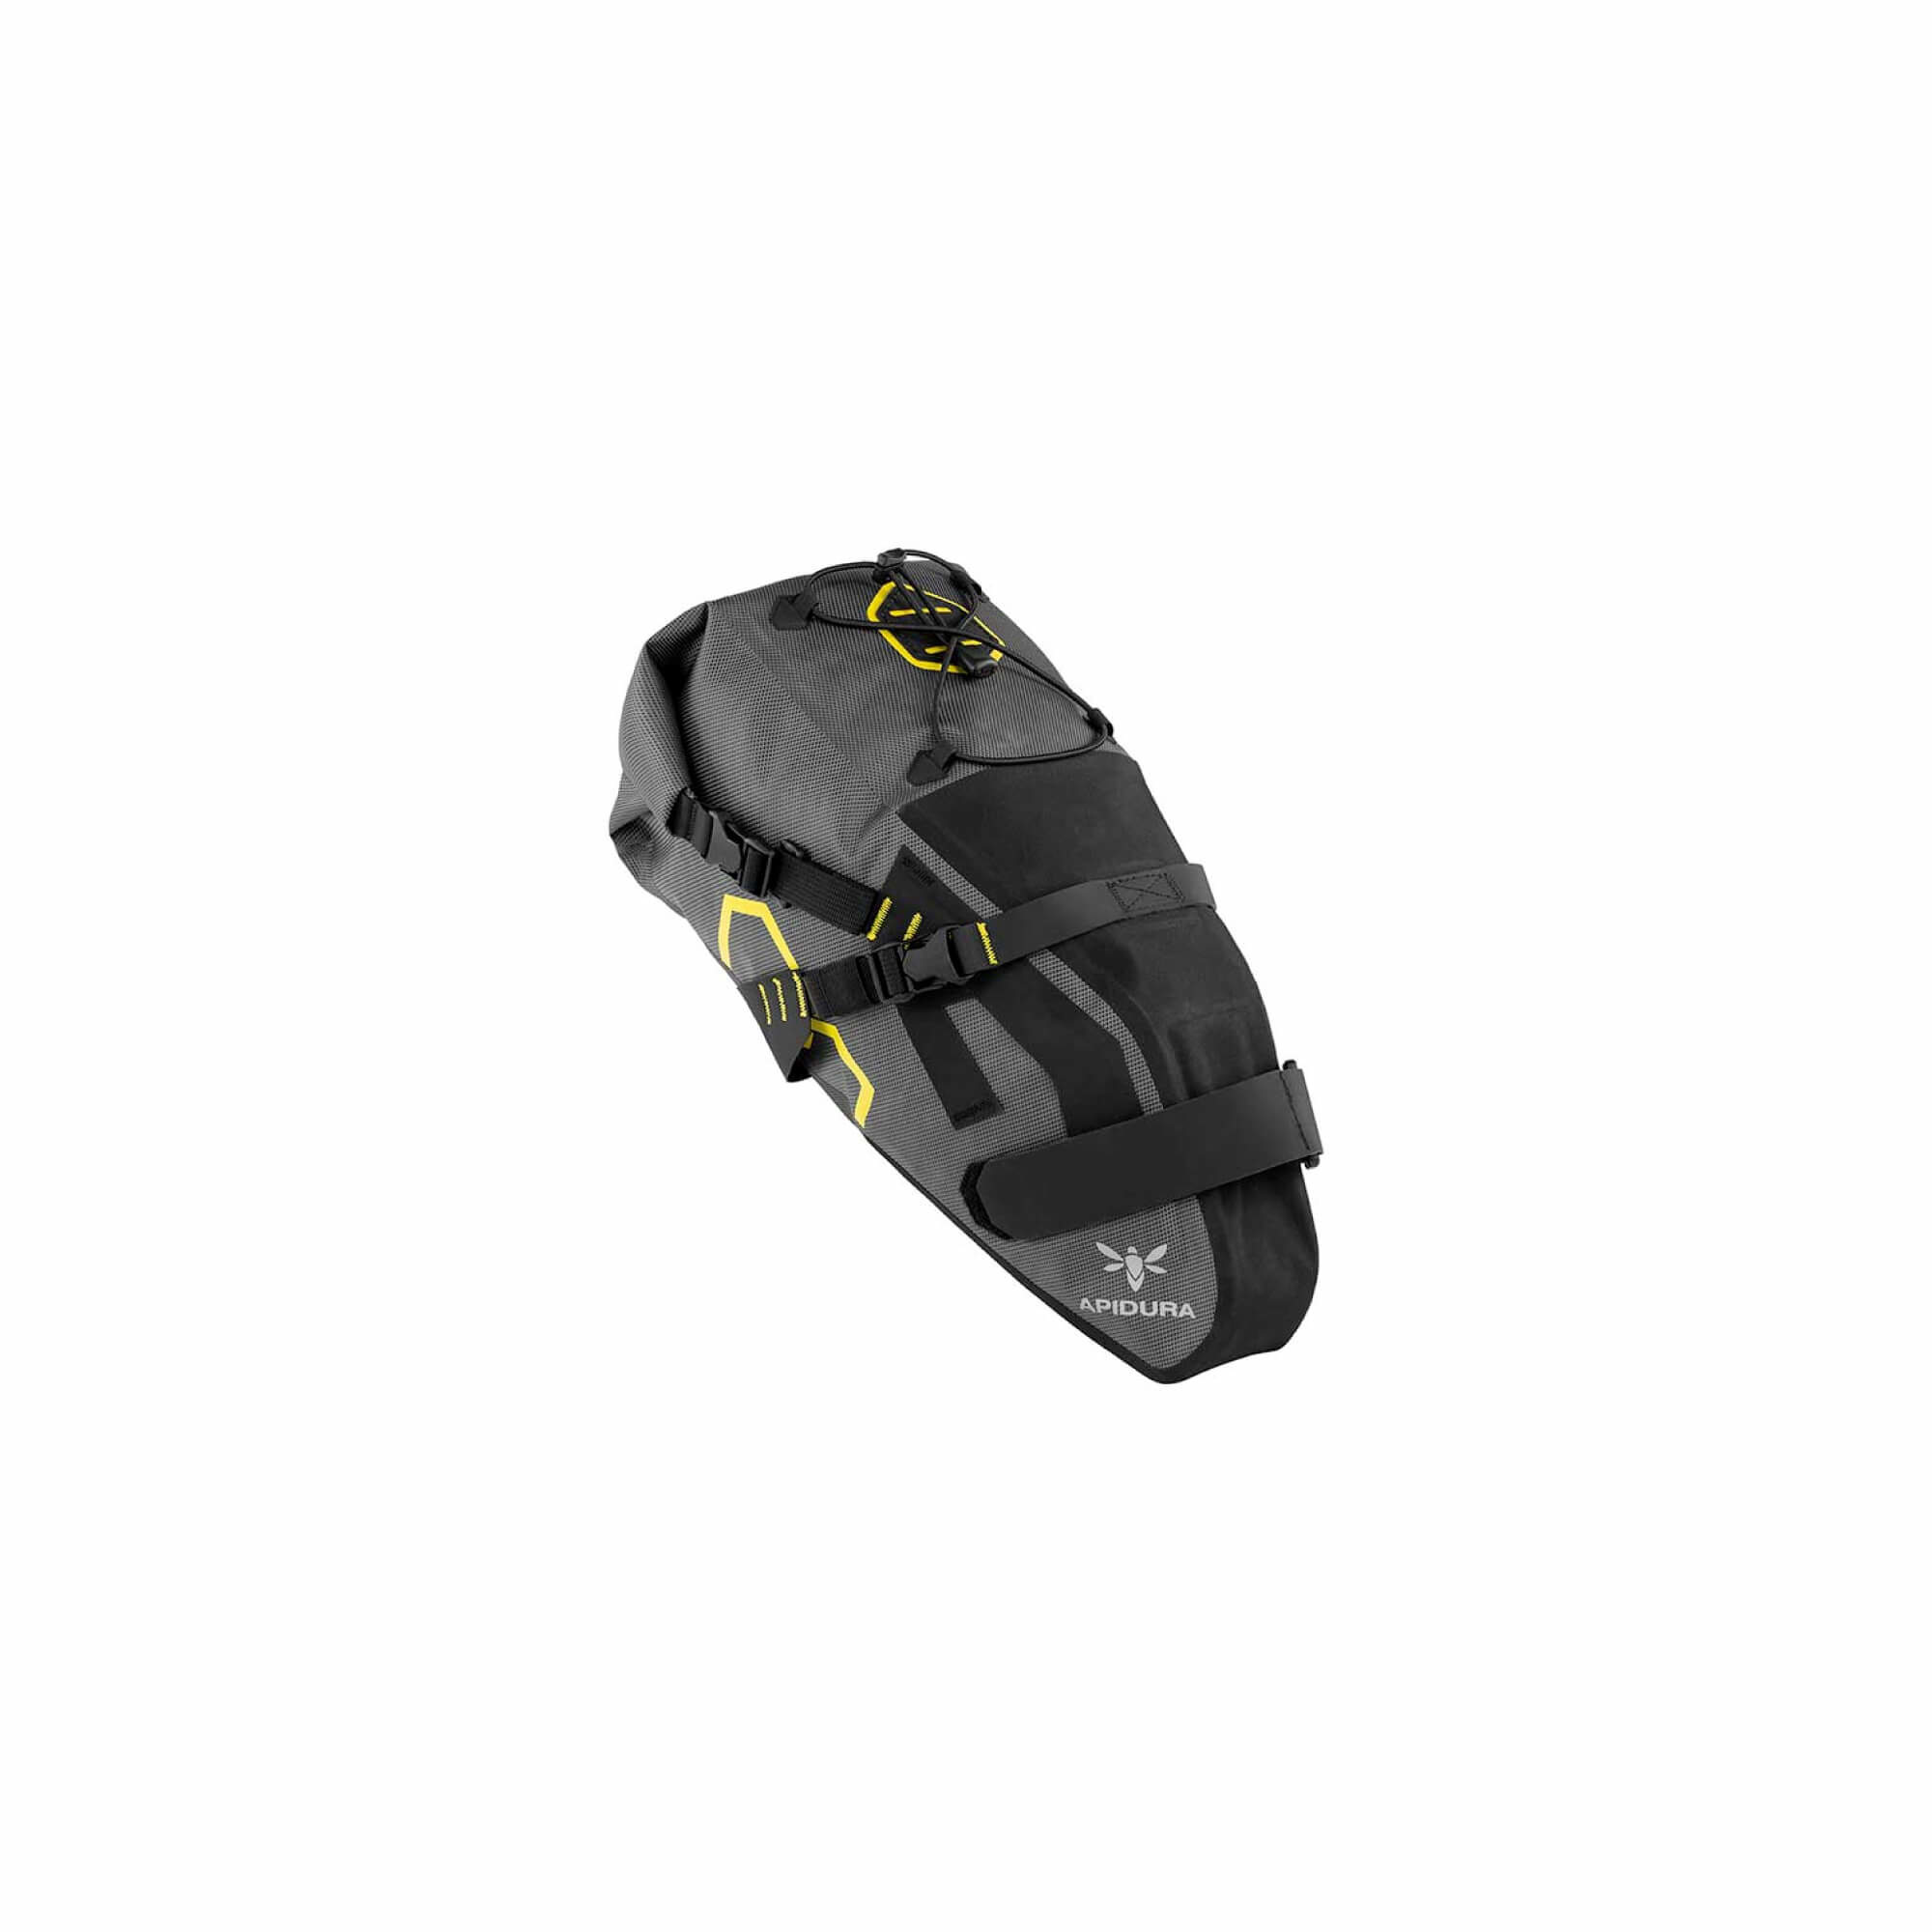 Expedition Saddle Pack-2